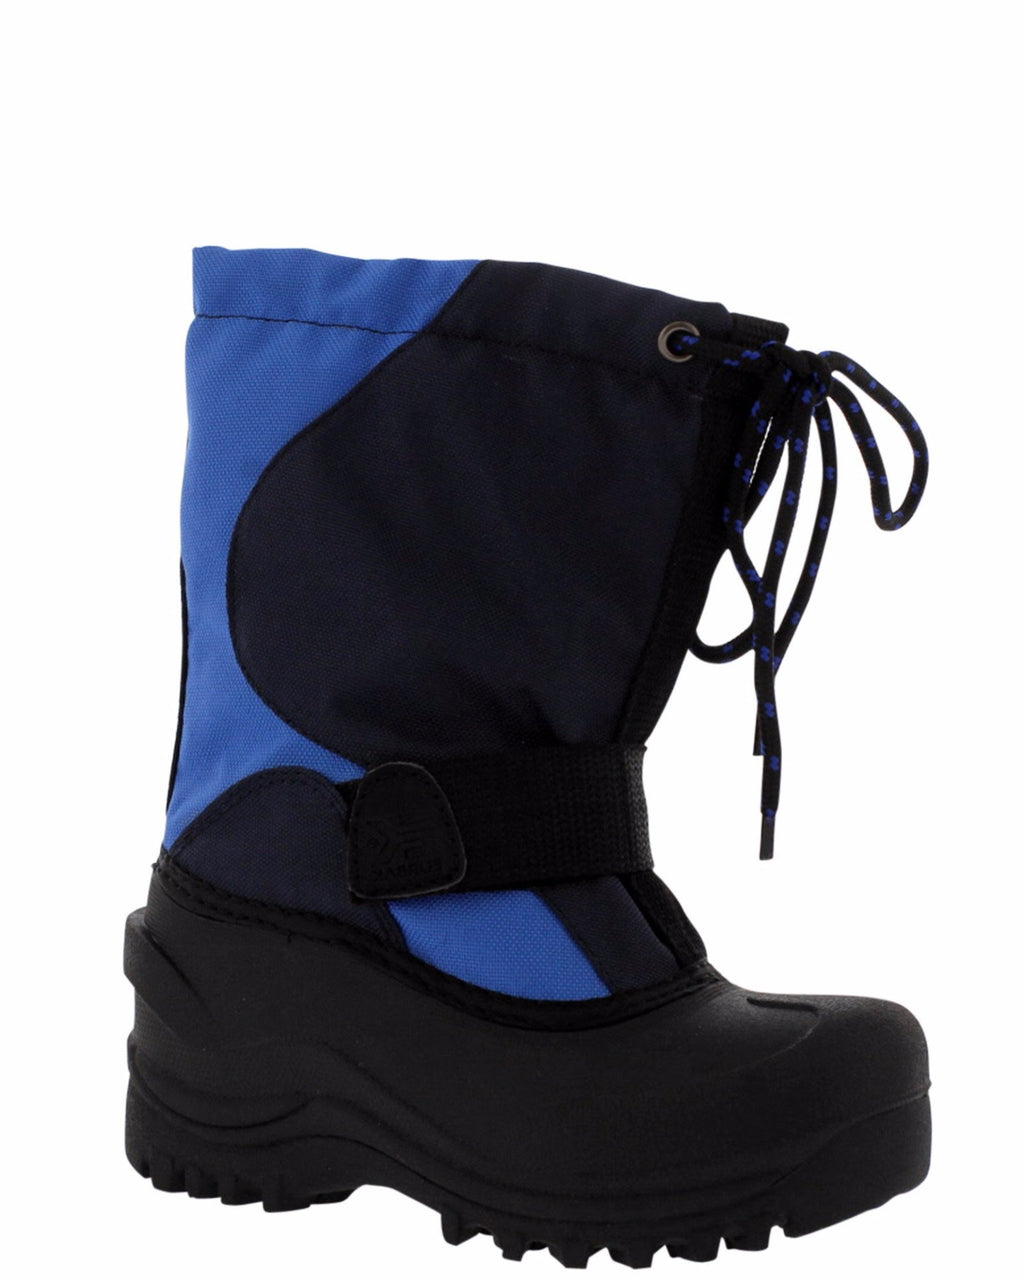 Insulated Snow Boots (PreSchool)